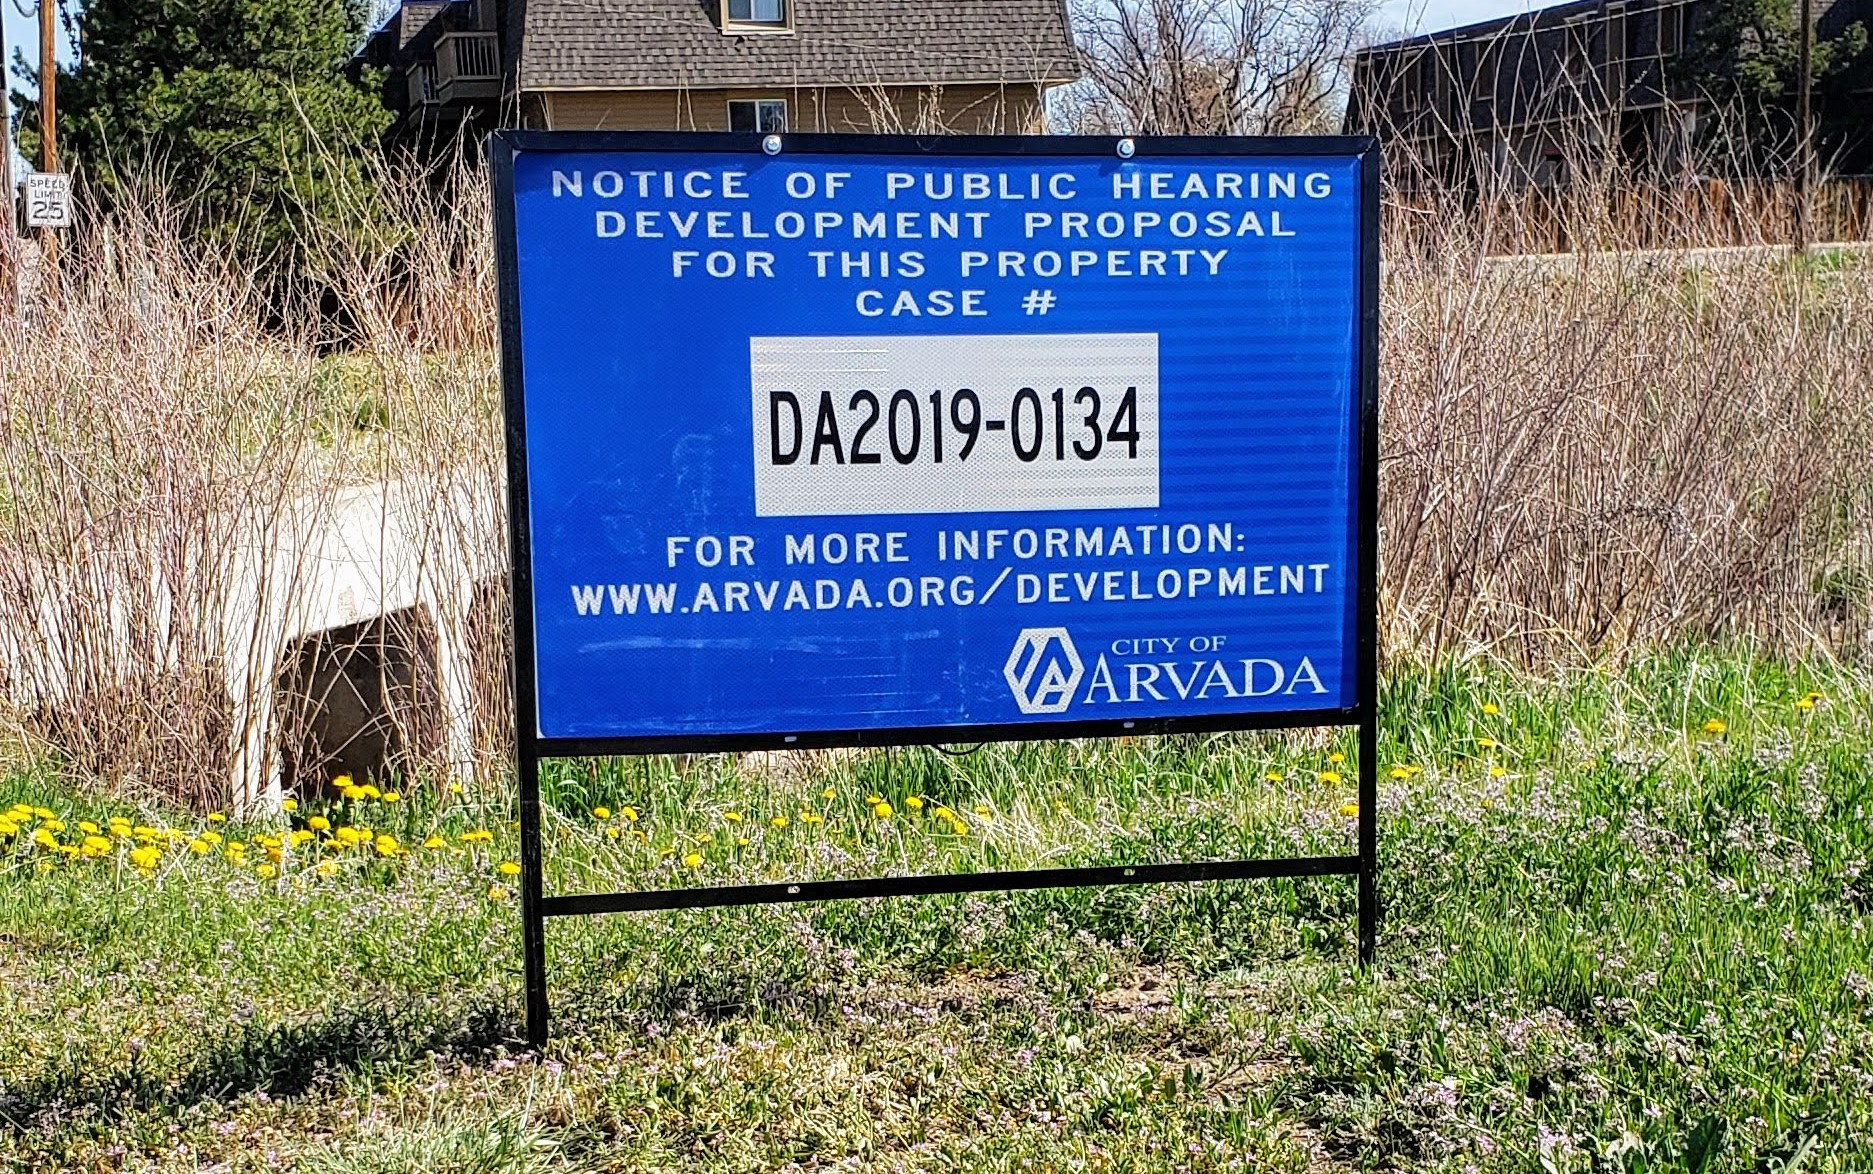 Image of a sign at the property location